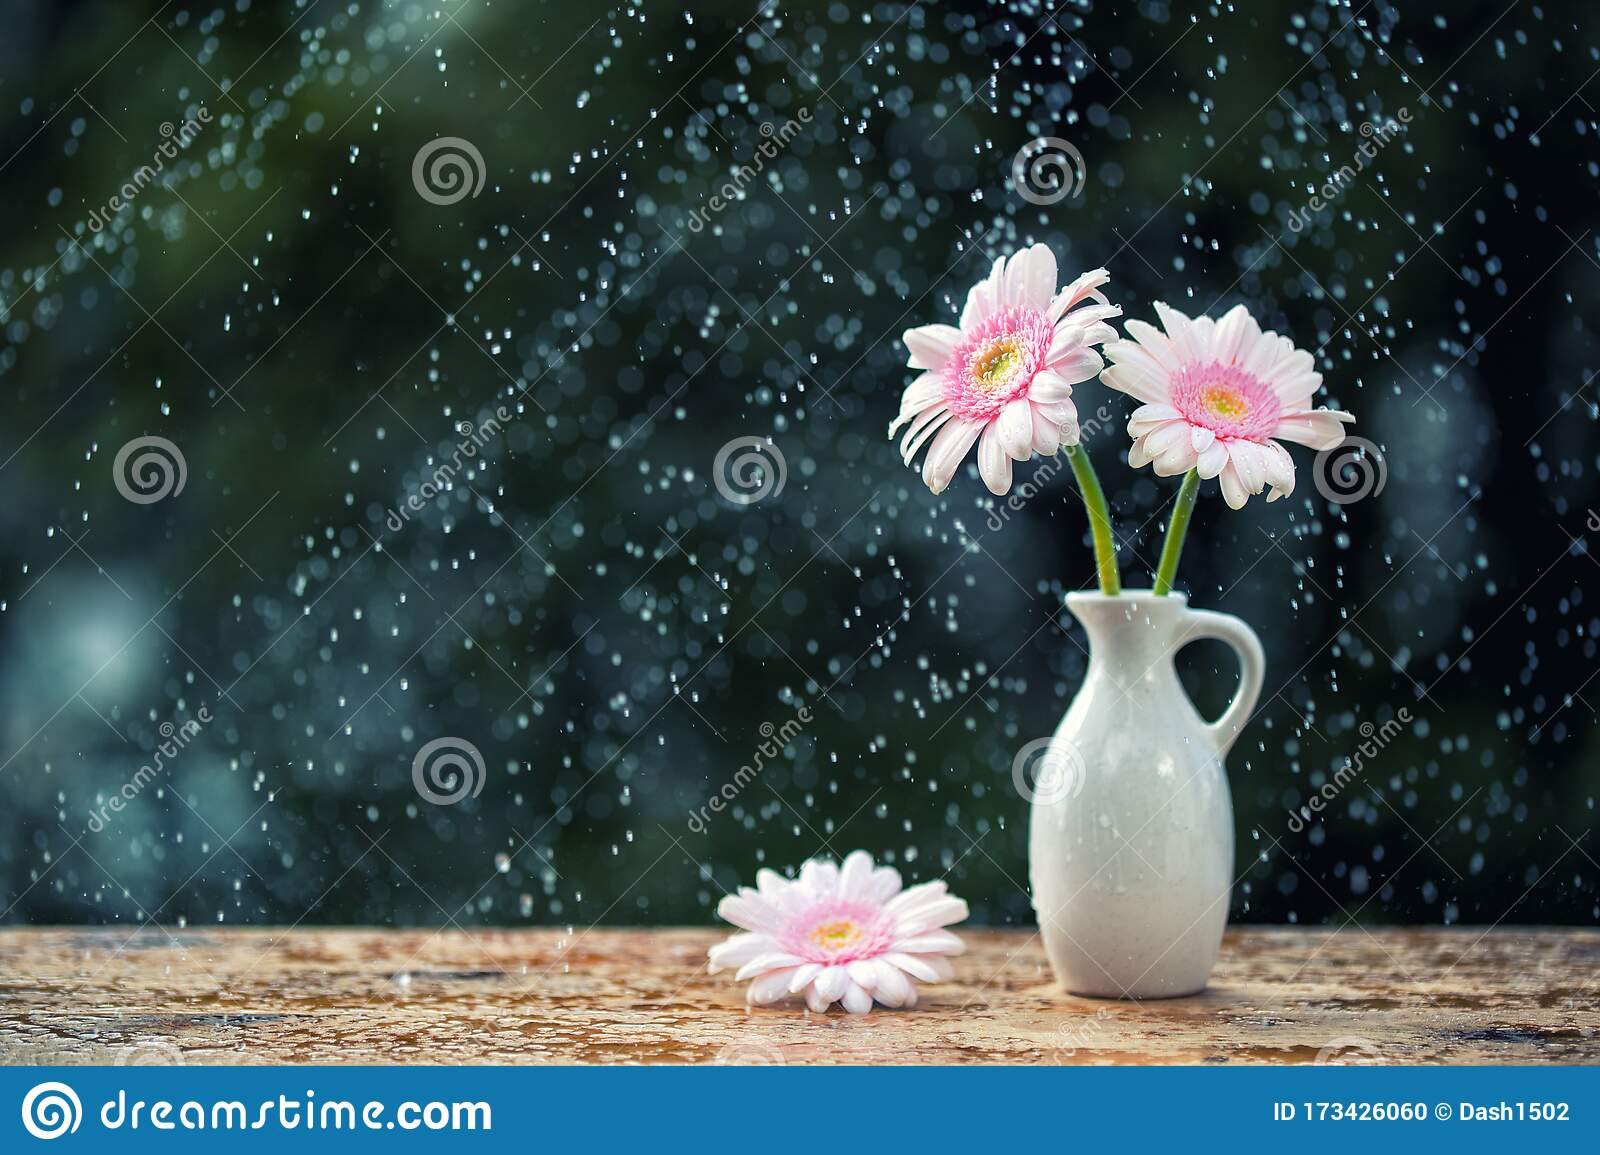 Beautiful Gerbera Daisy Flowers In Vase On Wooden Table Outdoors Under The Rain With Droplets Vintage Filter Stock Photo Image Of Design Droplet 173426060